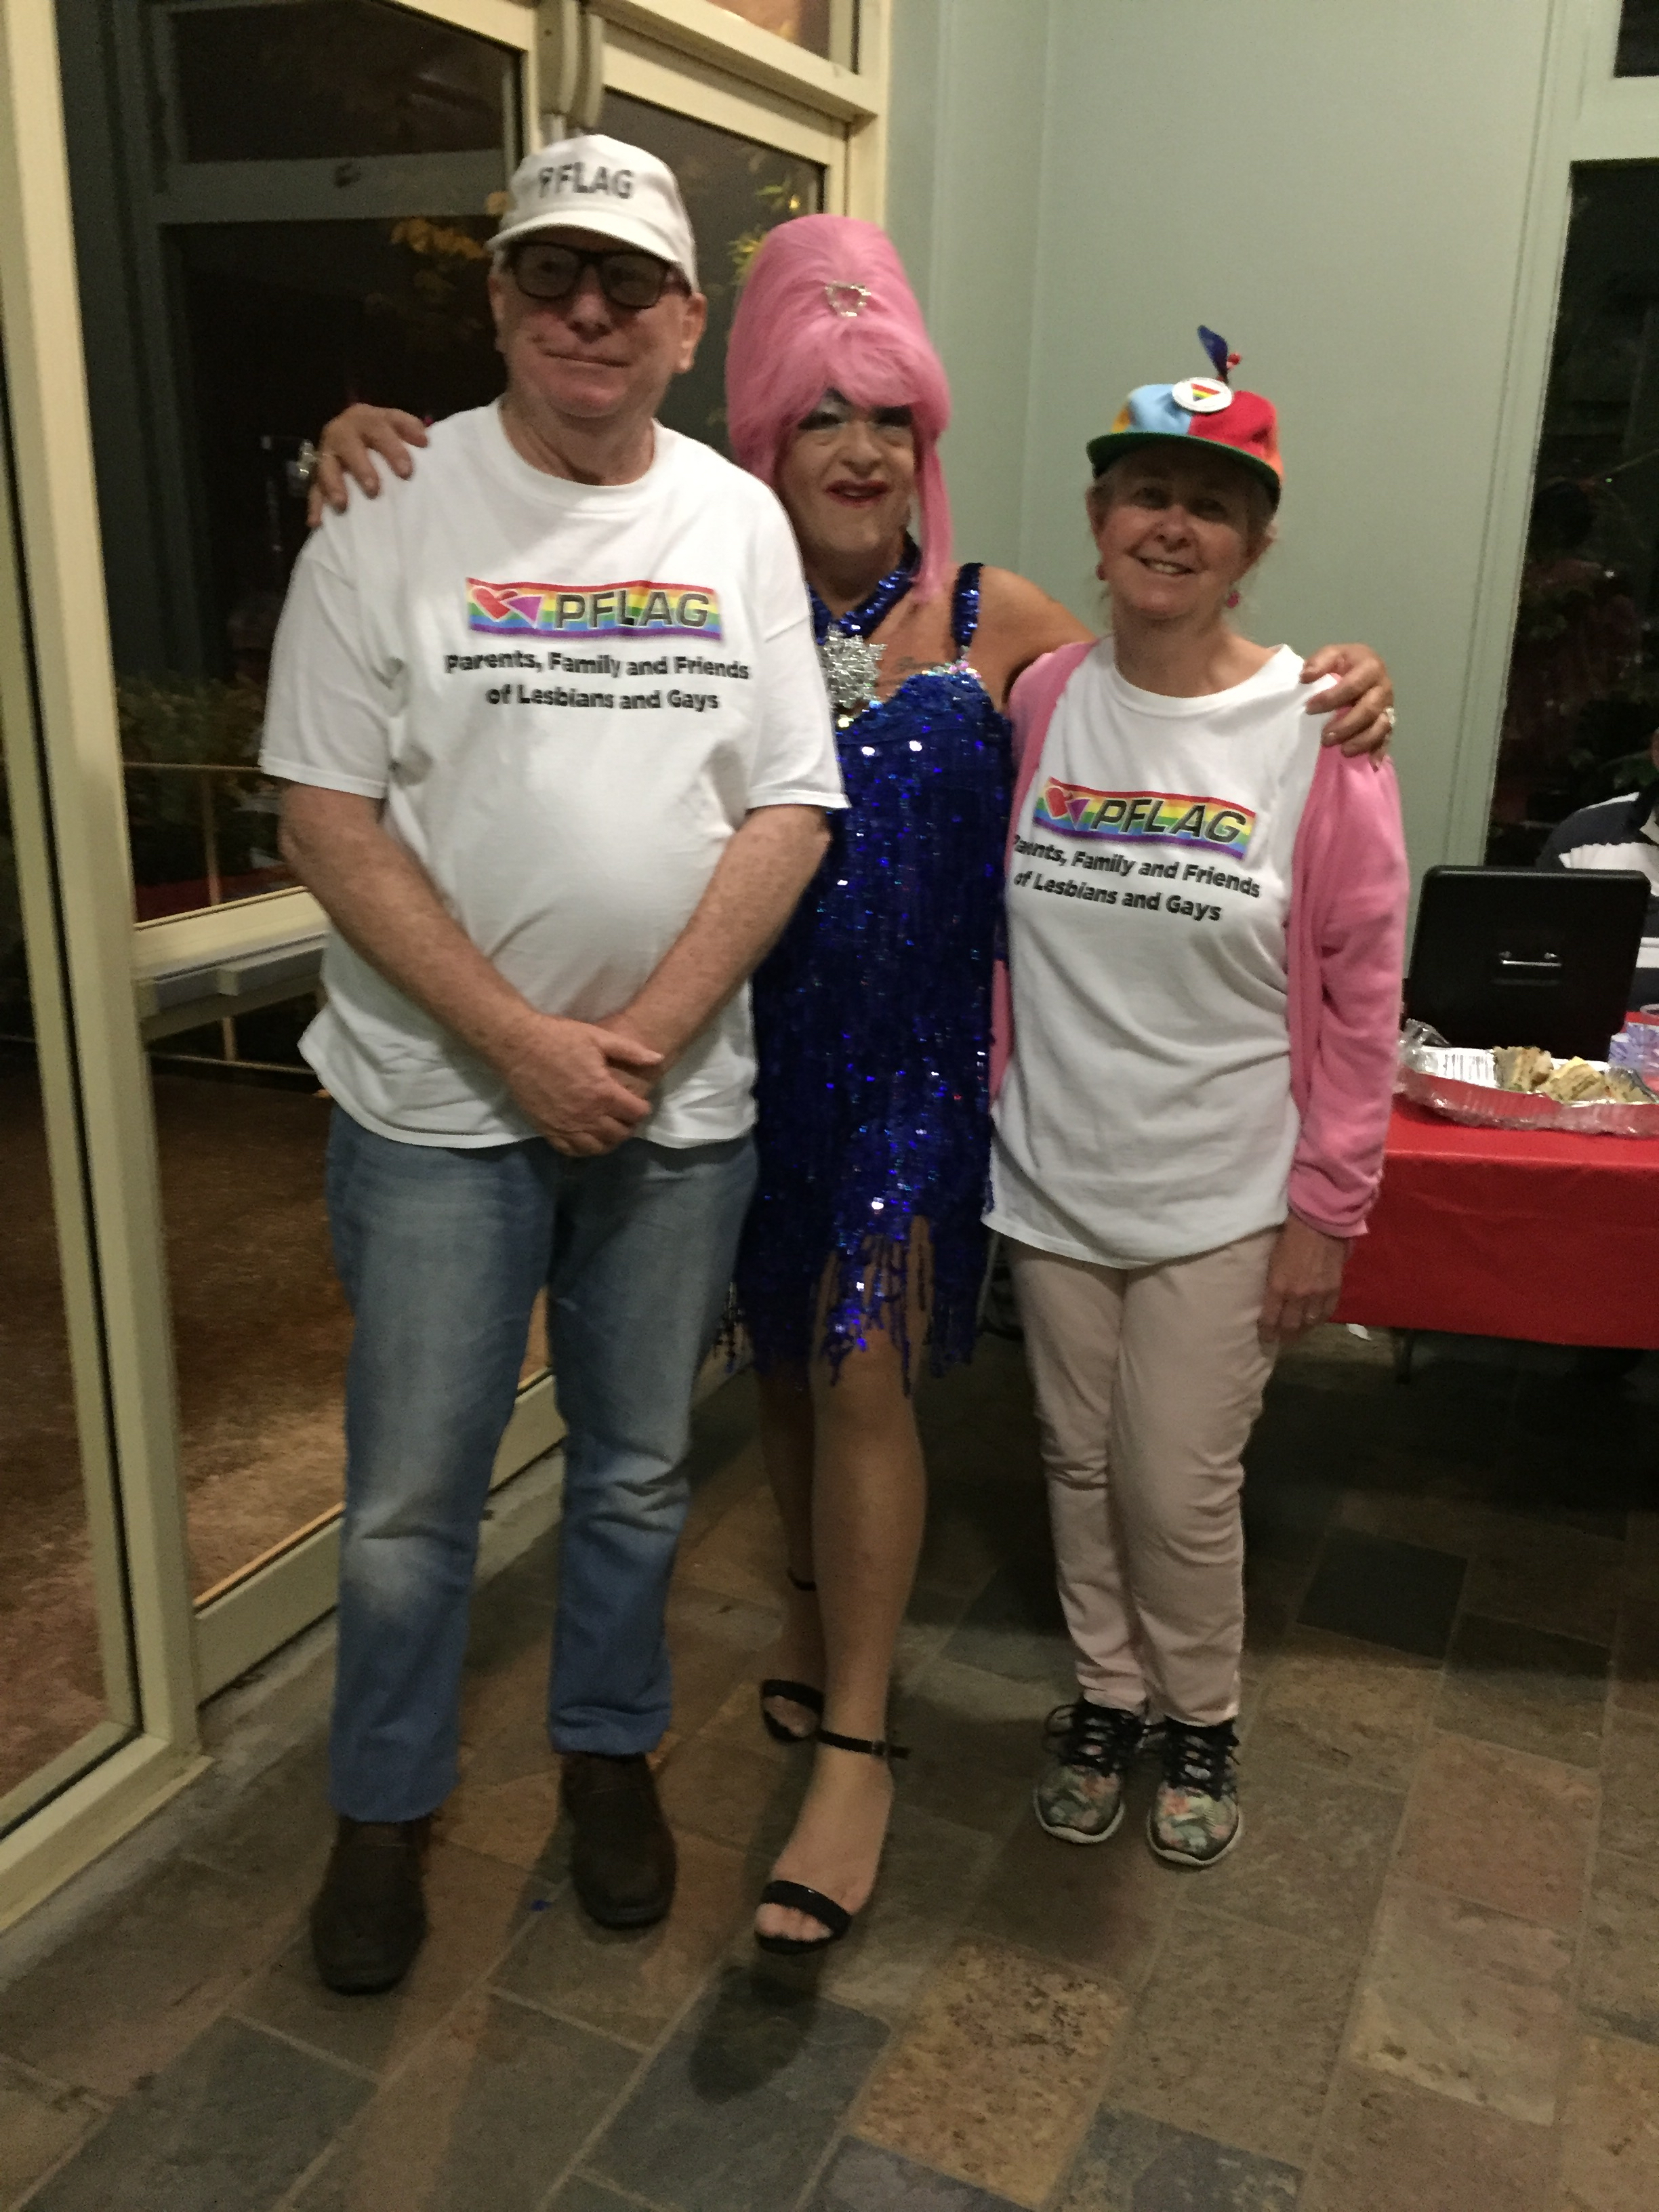 Ruth and Ron with PFLAG's friend, Quiche Lorraine was taken at the Summertime Disco.